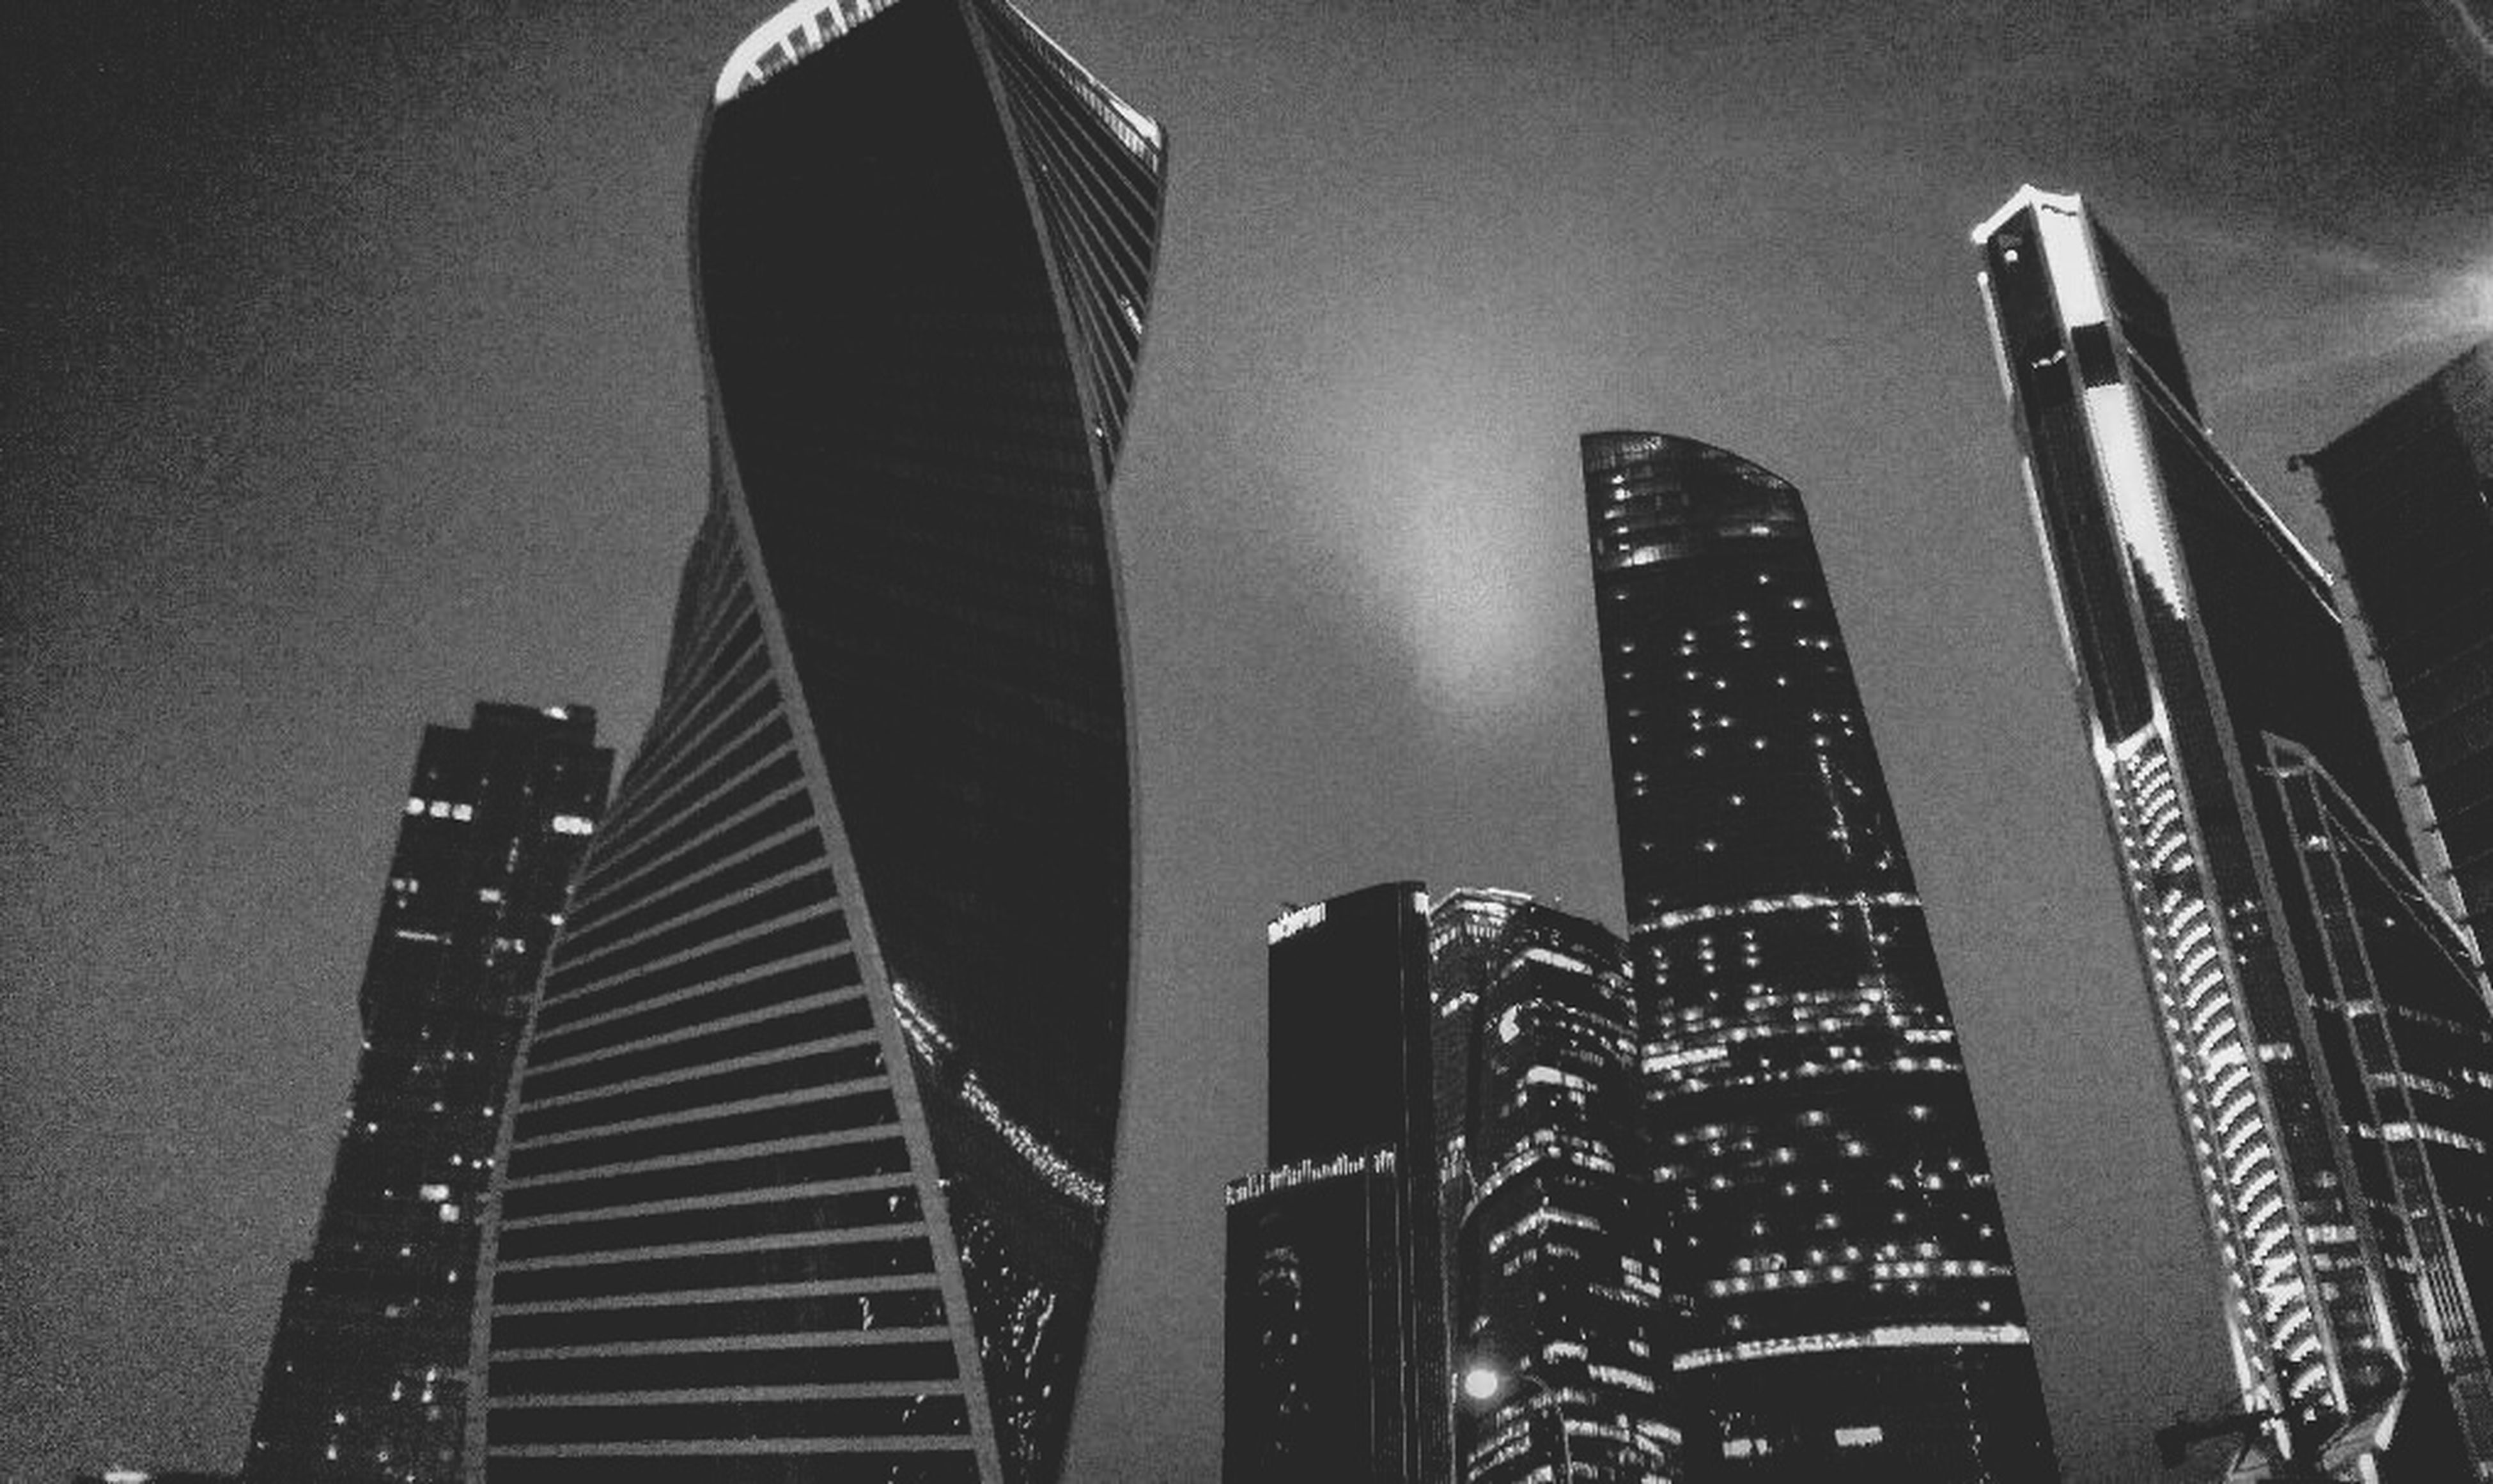 skyscraper, architecture, building exterior, city, built structure, low angle view, no people, modern, travel destinations, outdoors, growth, cityscape, sky, urban skyline, downtown district, night